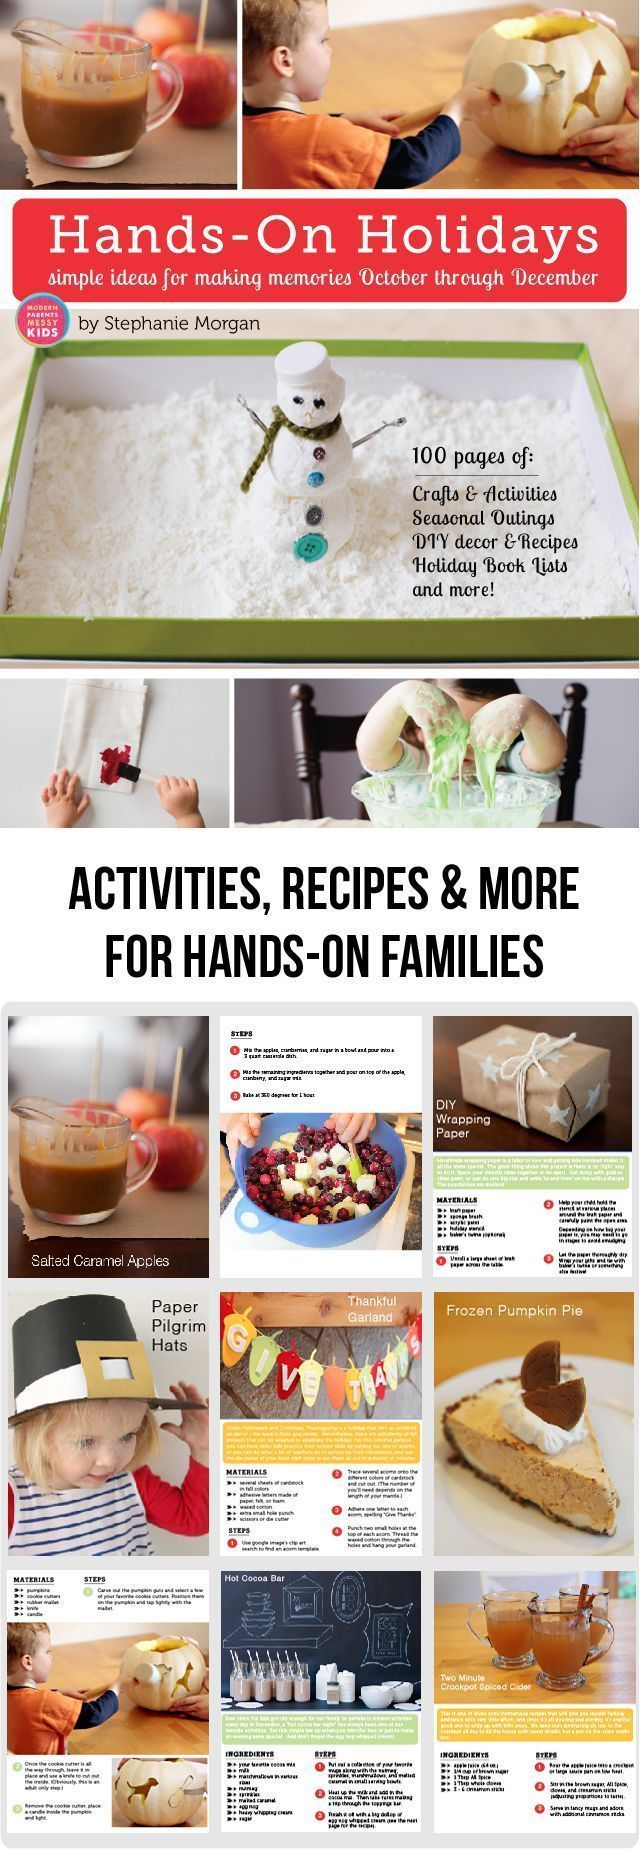 Hands-On Holidays: Simple Ideas for Making Memories October through December! Hands-On Holidays: Simple Ideas for Making Memories October through December - The littles and I had so much fun working our way through this last holiday season. The recipes and crafts are totally doable and we loved the book lists!